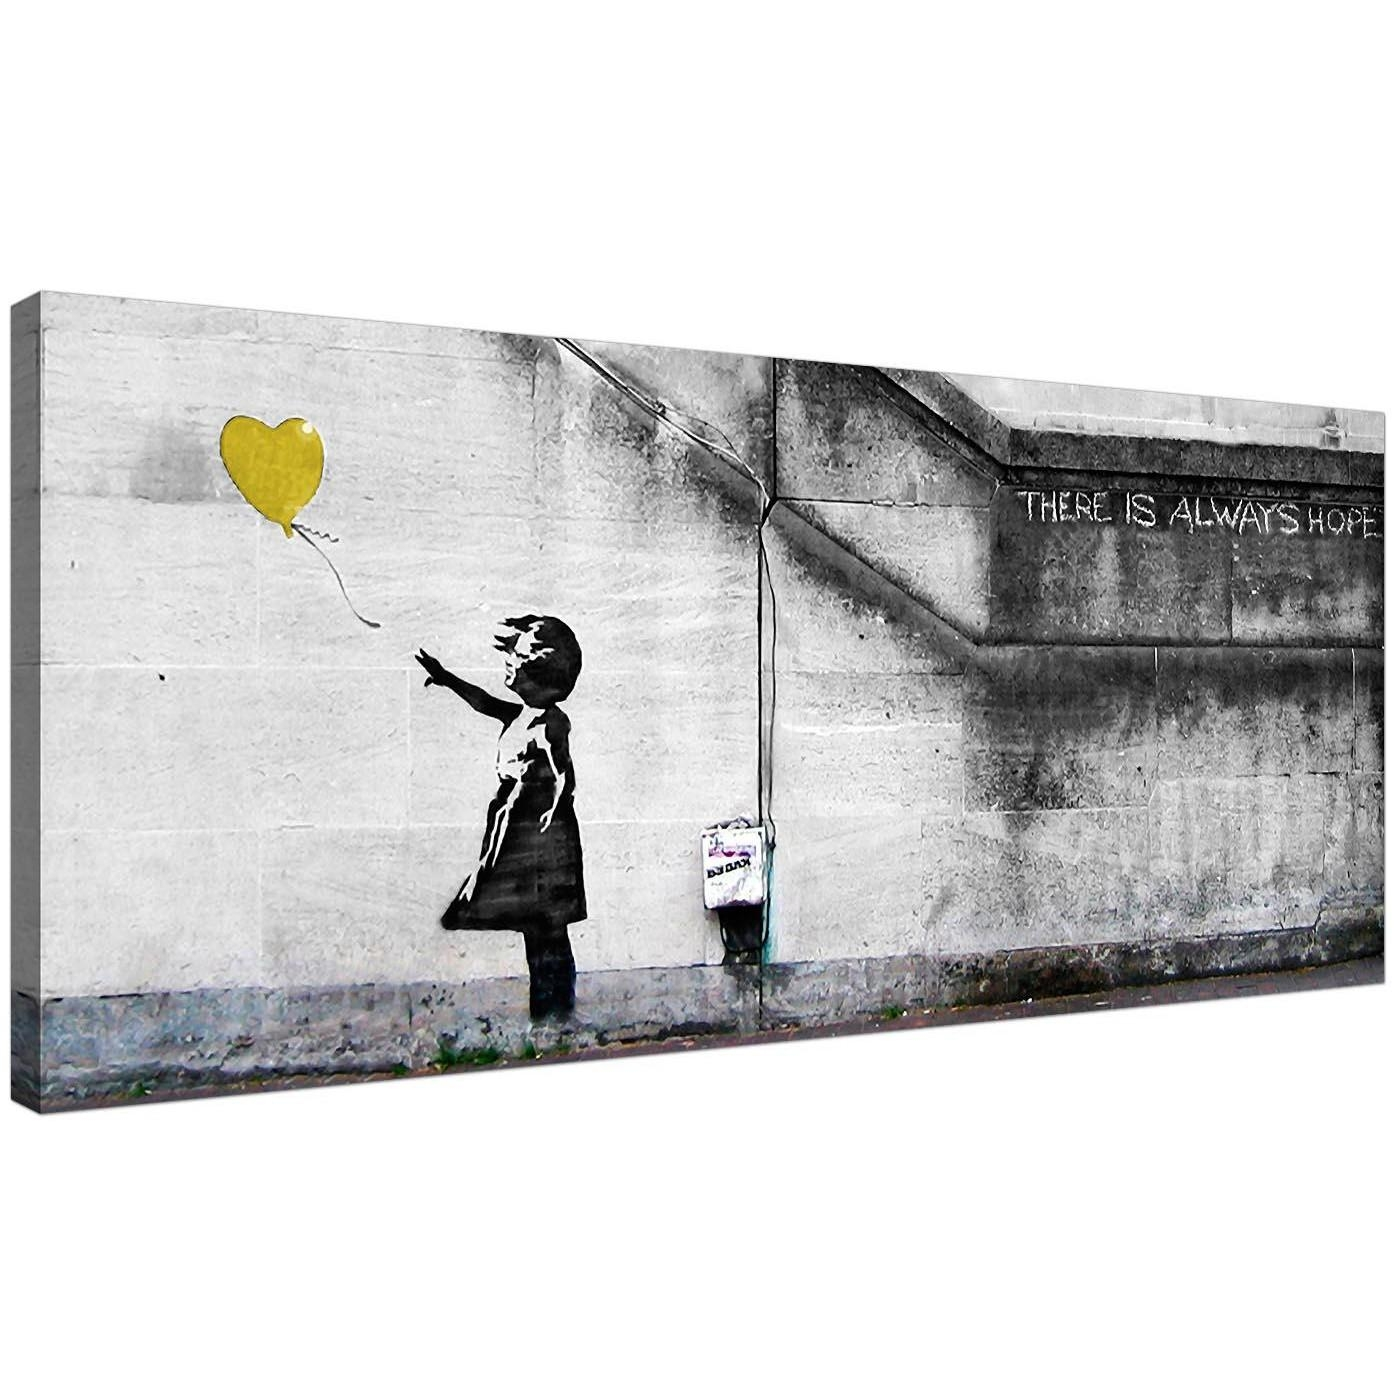 Cheap Yellow Canvas Art Of Banksy Balloon Girl Pertaining To Yellow Grey Wall Art (Image 6 of 20)